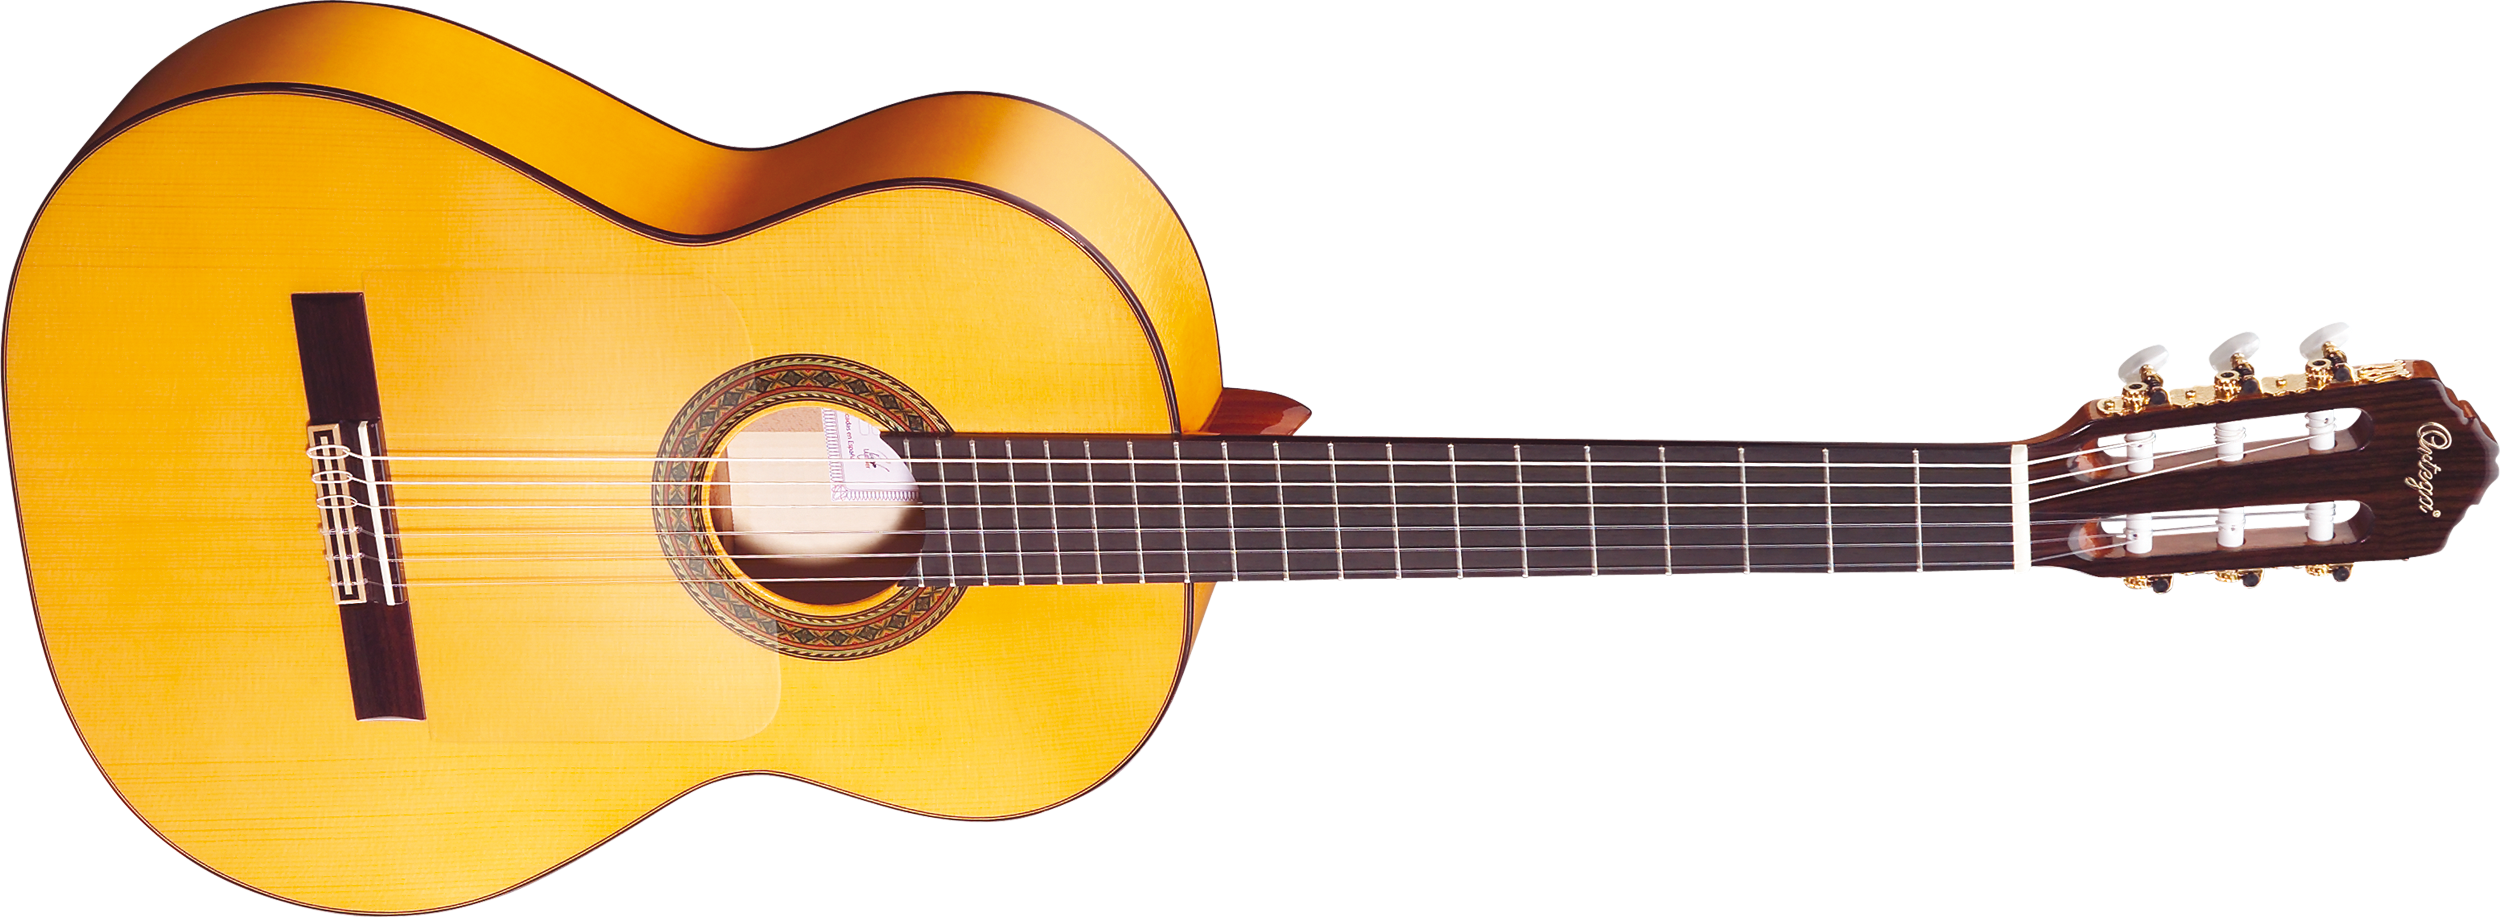 Acoustic guitar PNG image